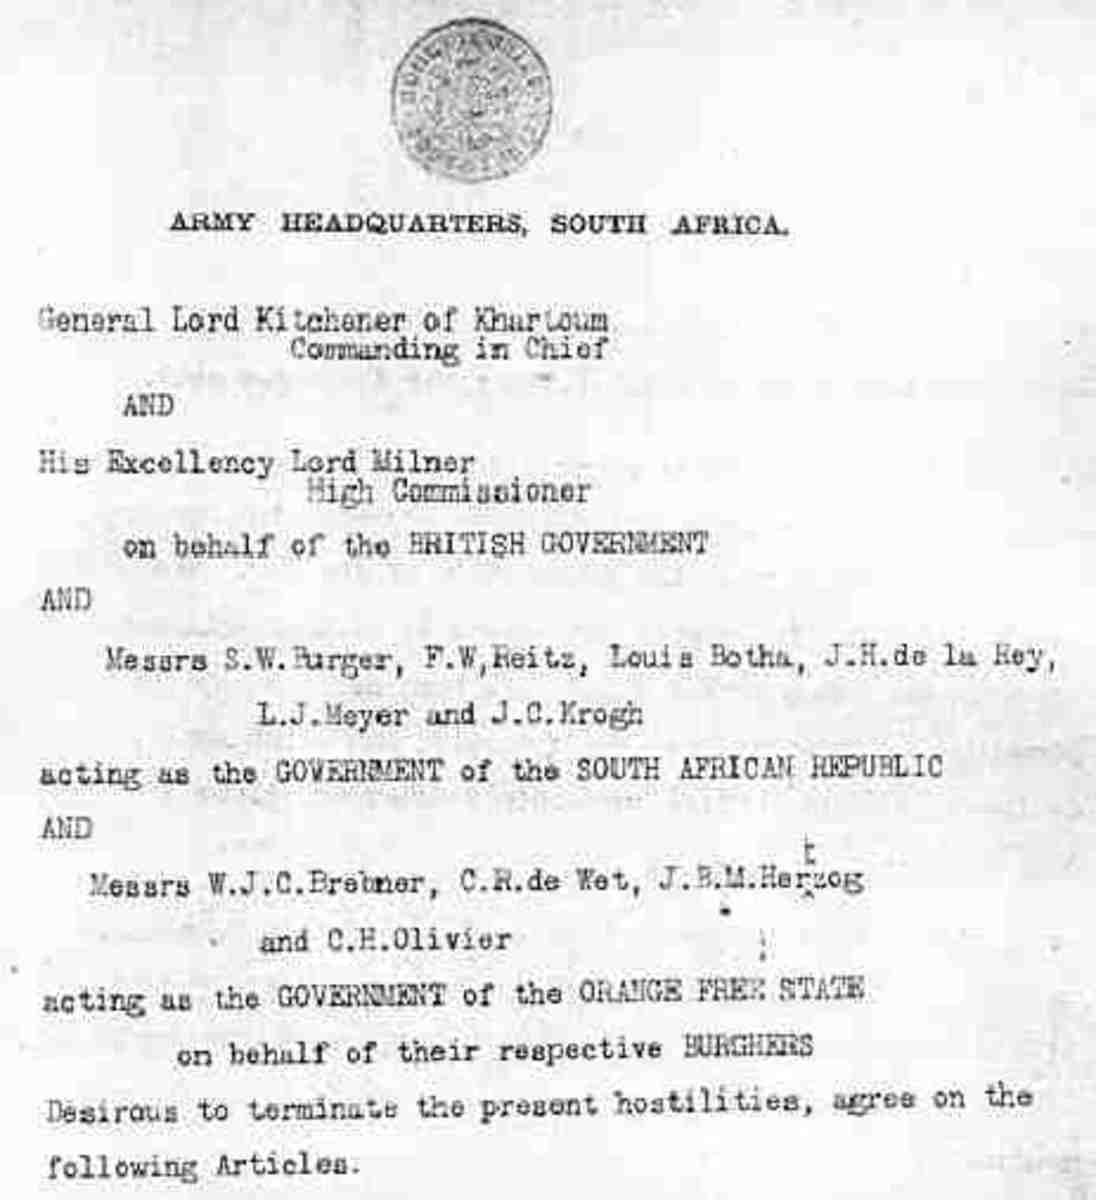 The top of the first page of the Treaty